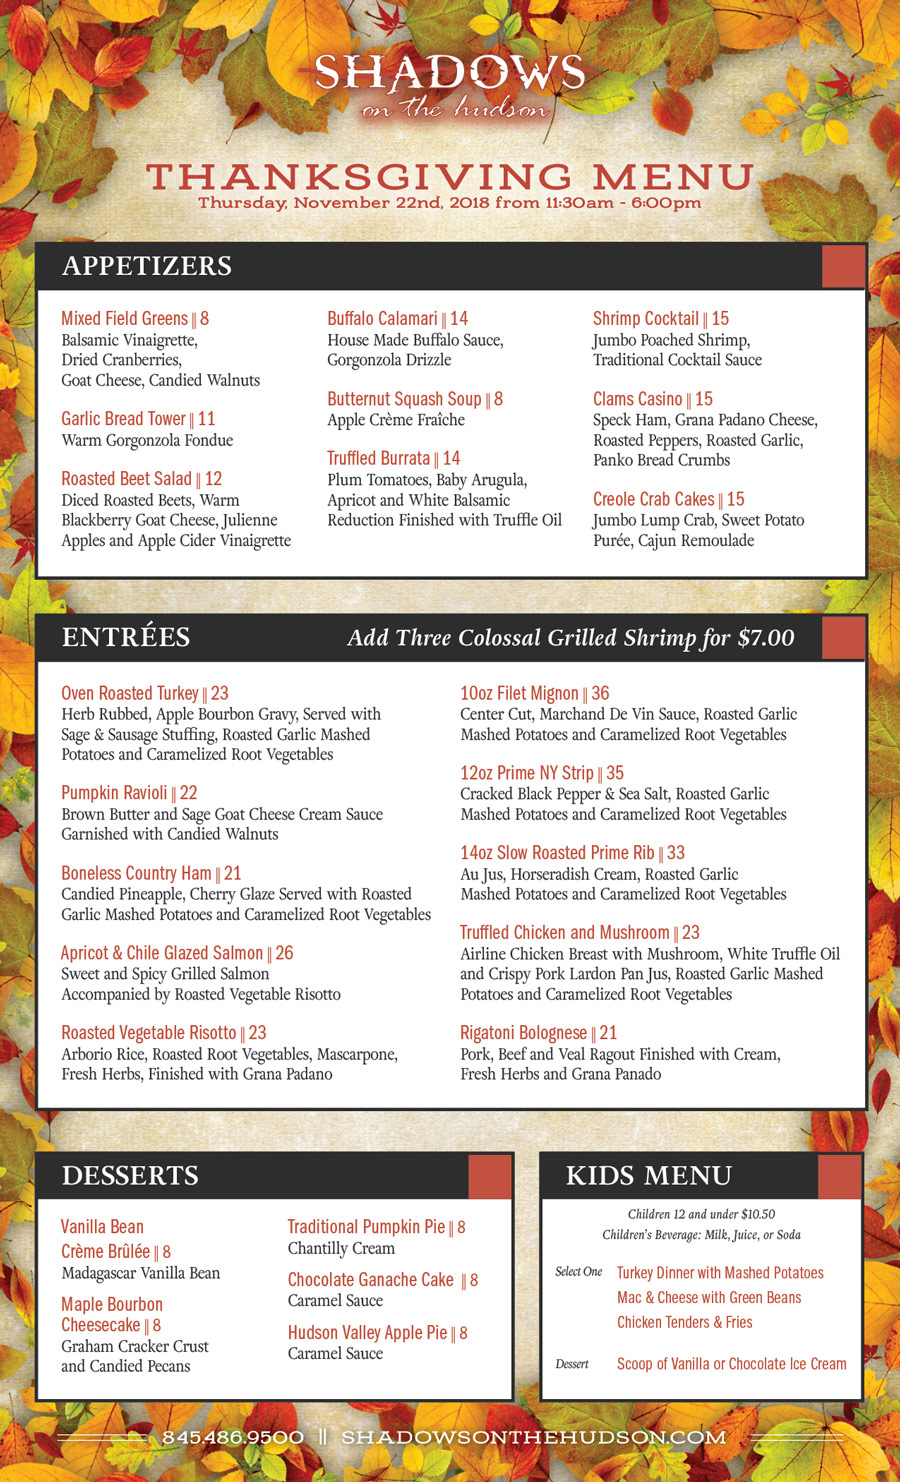 Shadows on the Hudson Thanksgiving menu 2018